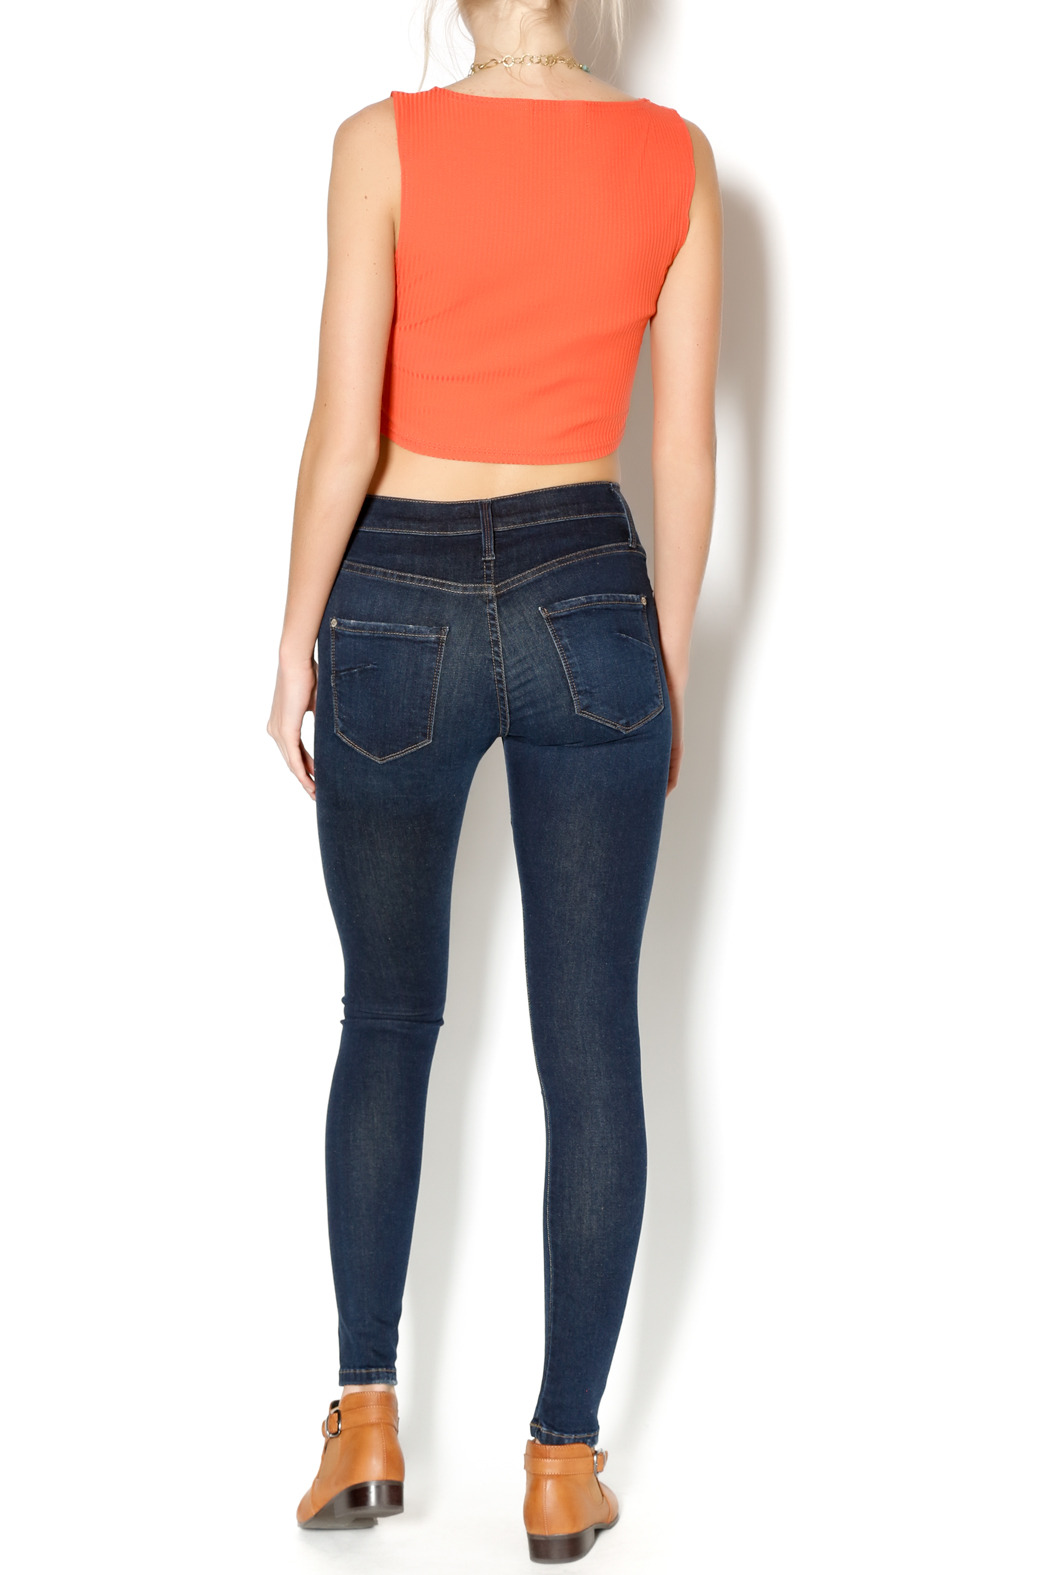 James Jeans Pirouette Twiggy Dancer Denim - Side Cropped Image